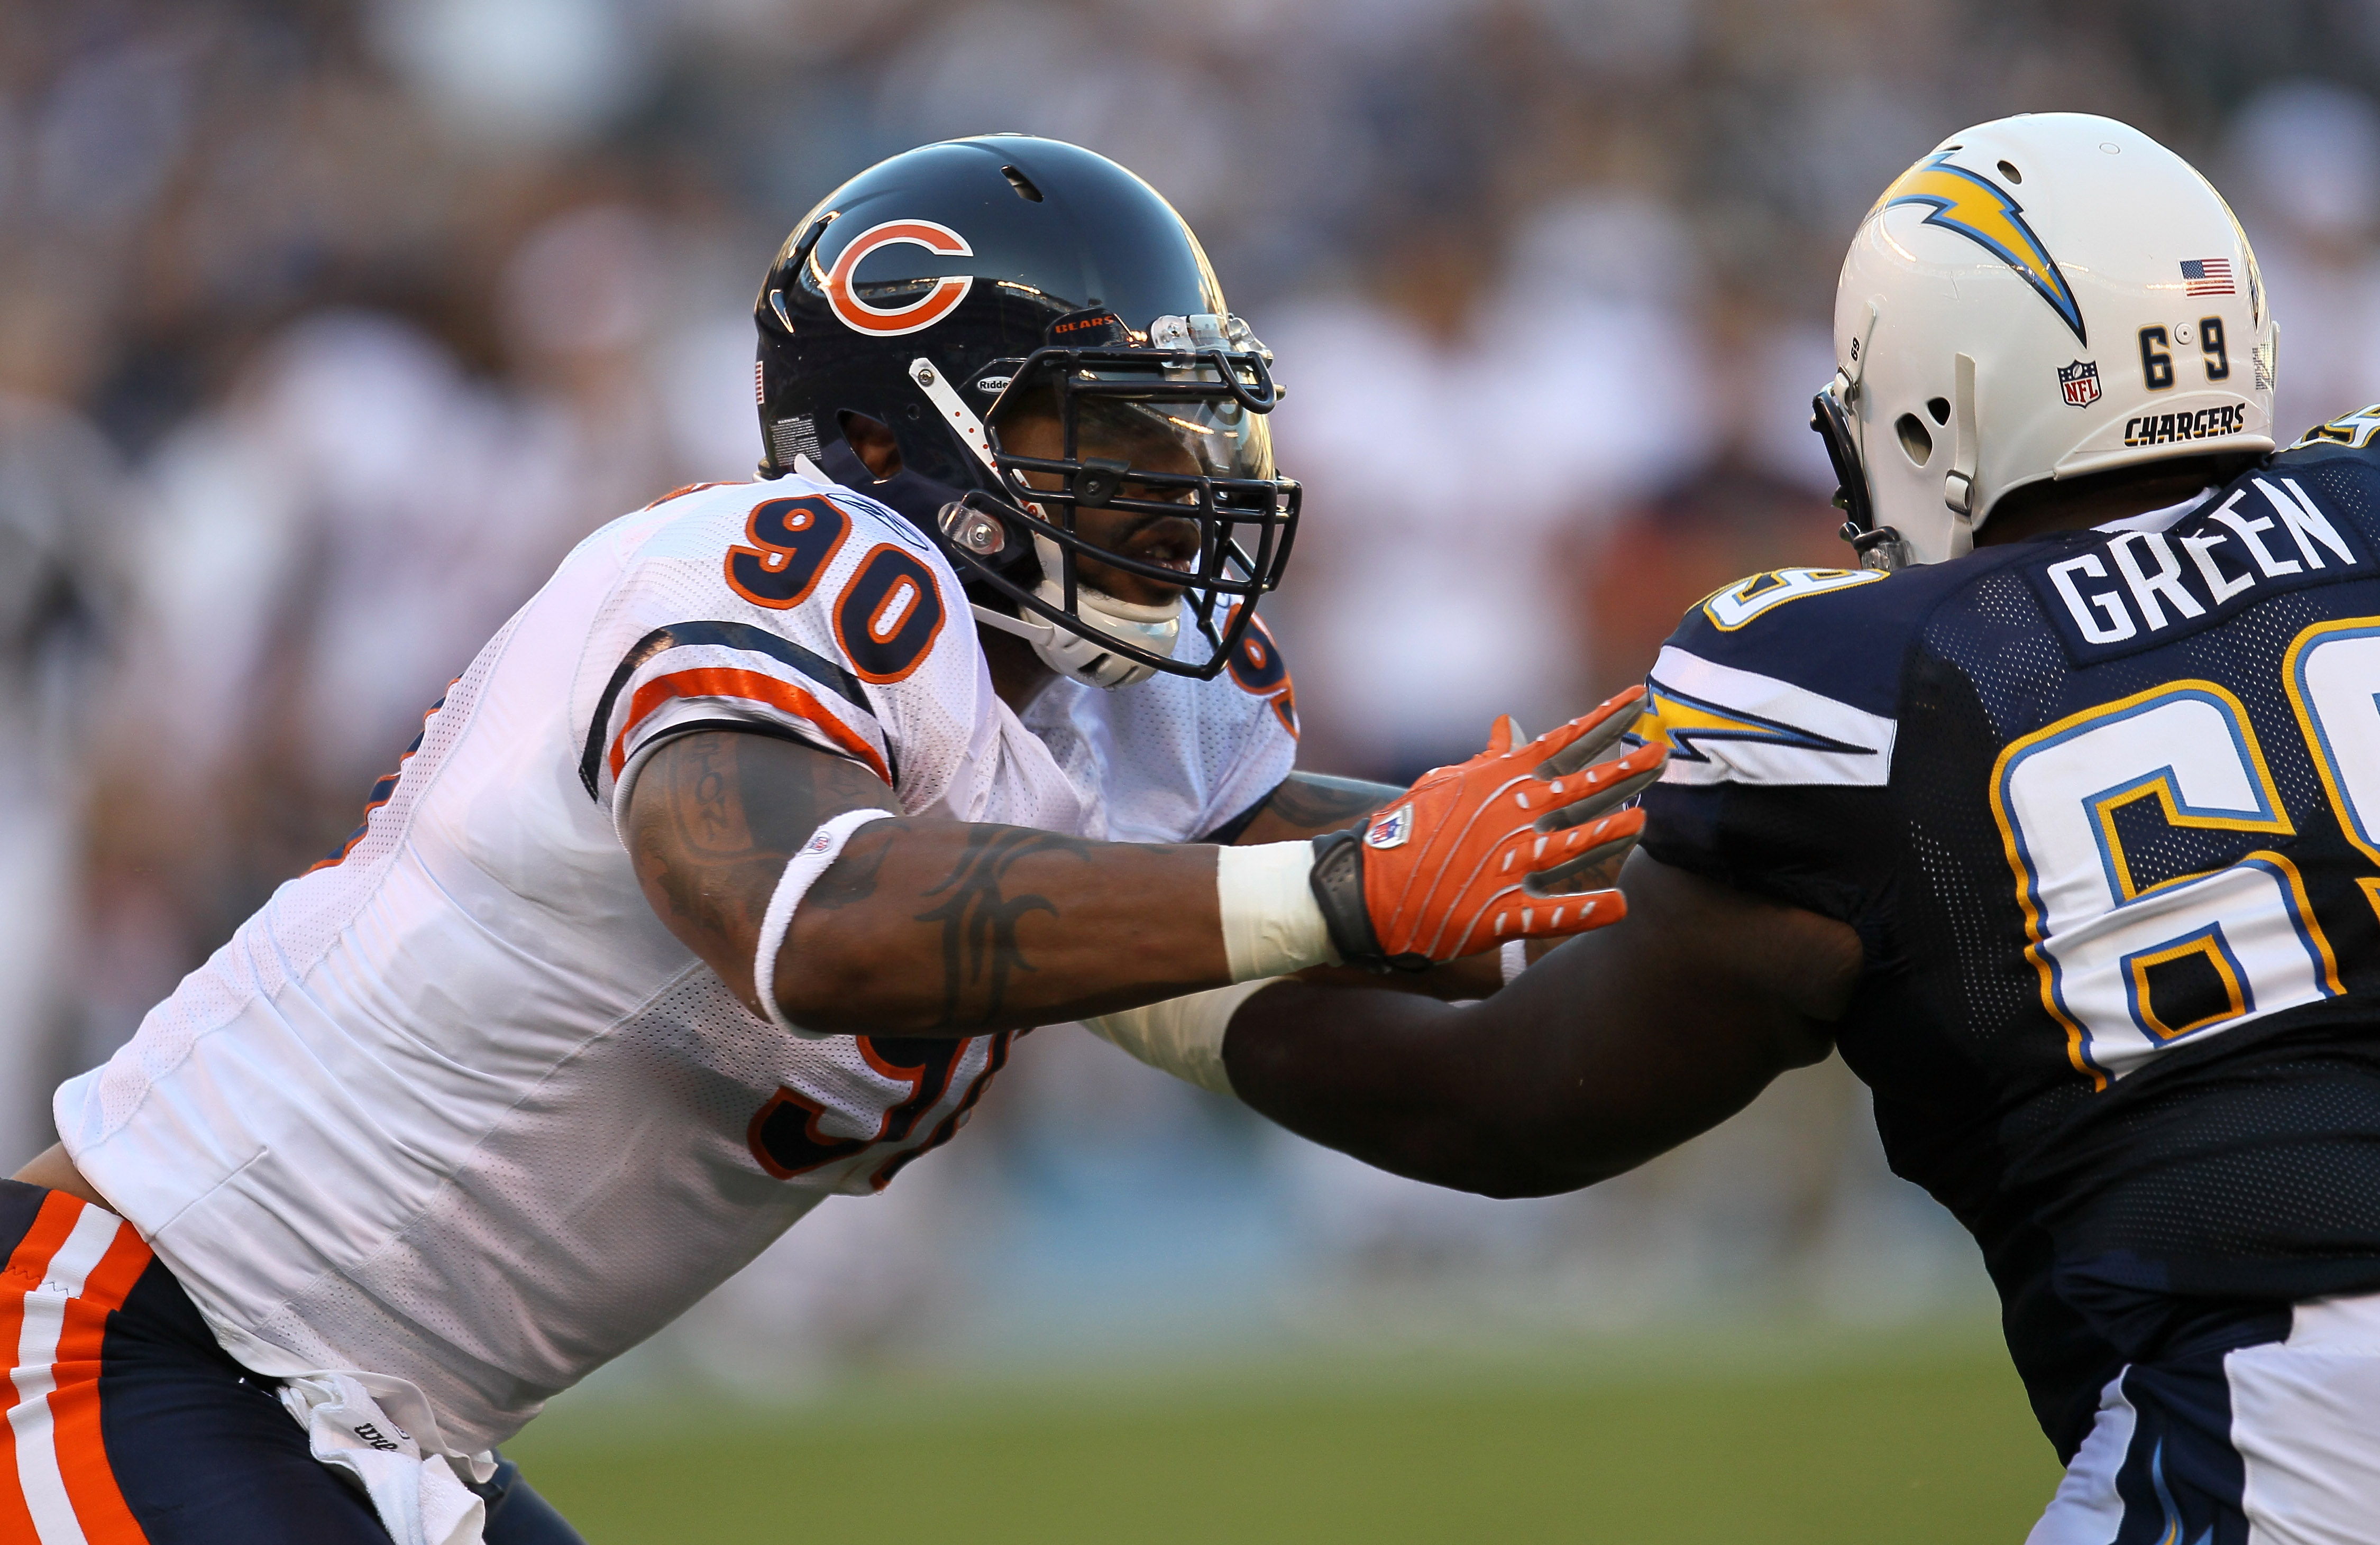 SAN DIEGO - AUGUST 14:  Defensive end Julius Peppers #90 of the Chicago Bears battles offensive guard Tyrondne Green #69 of the San Diego Chargers on August 14, 2010 at Qualcomm Stadium in San Diego, California.   (Photo by Stephen Dunn/Getty Images)